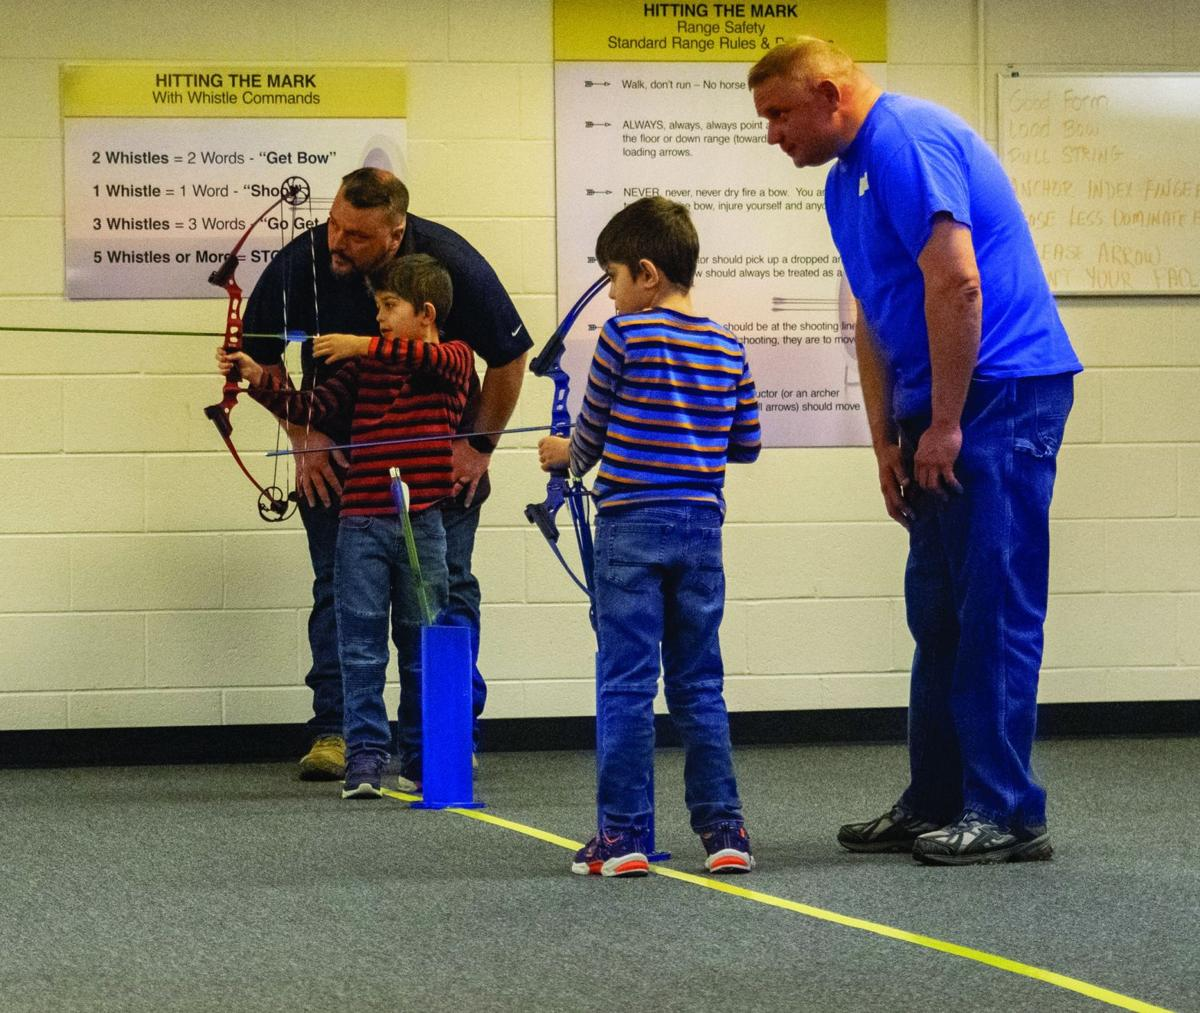 PHOTOS: His Pins Ministry archery | Featured Galleries